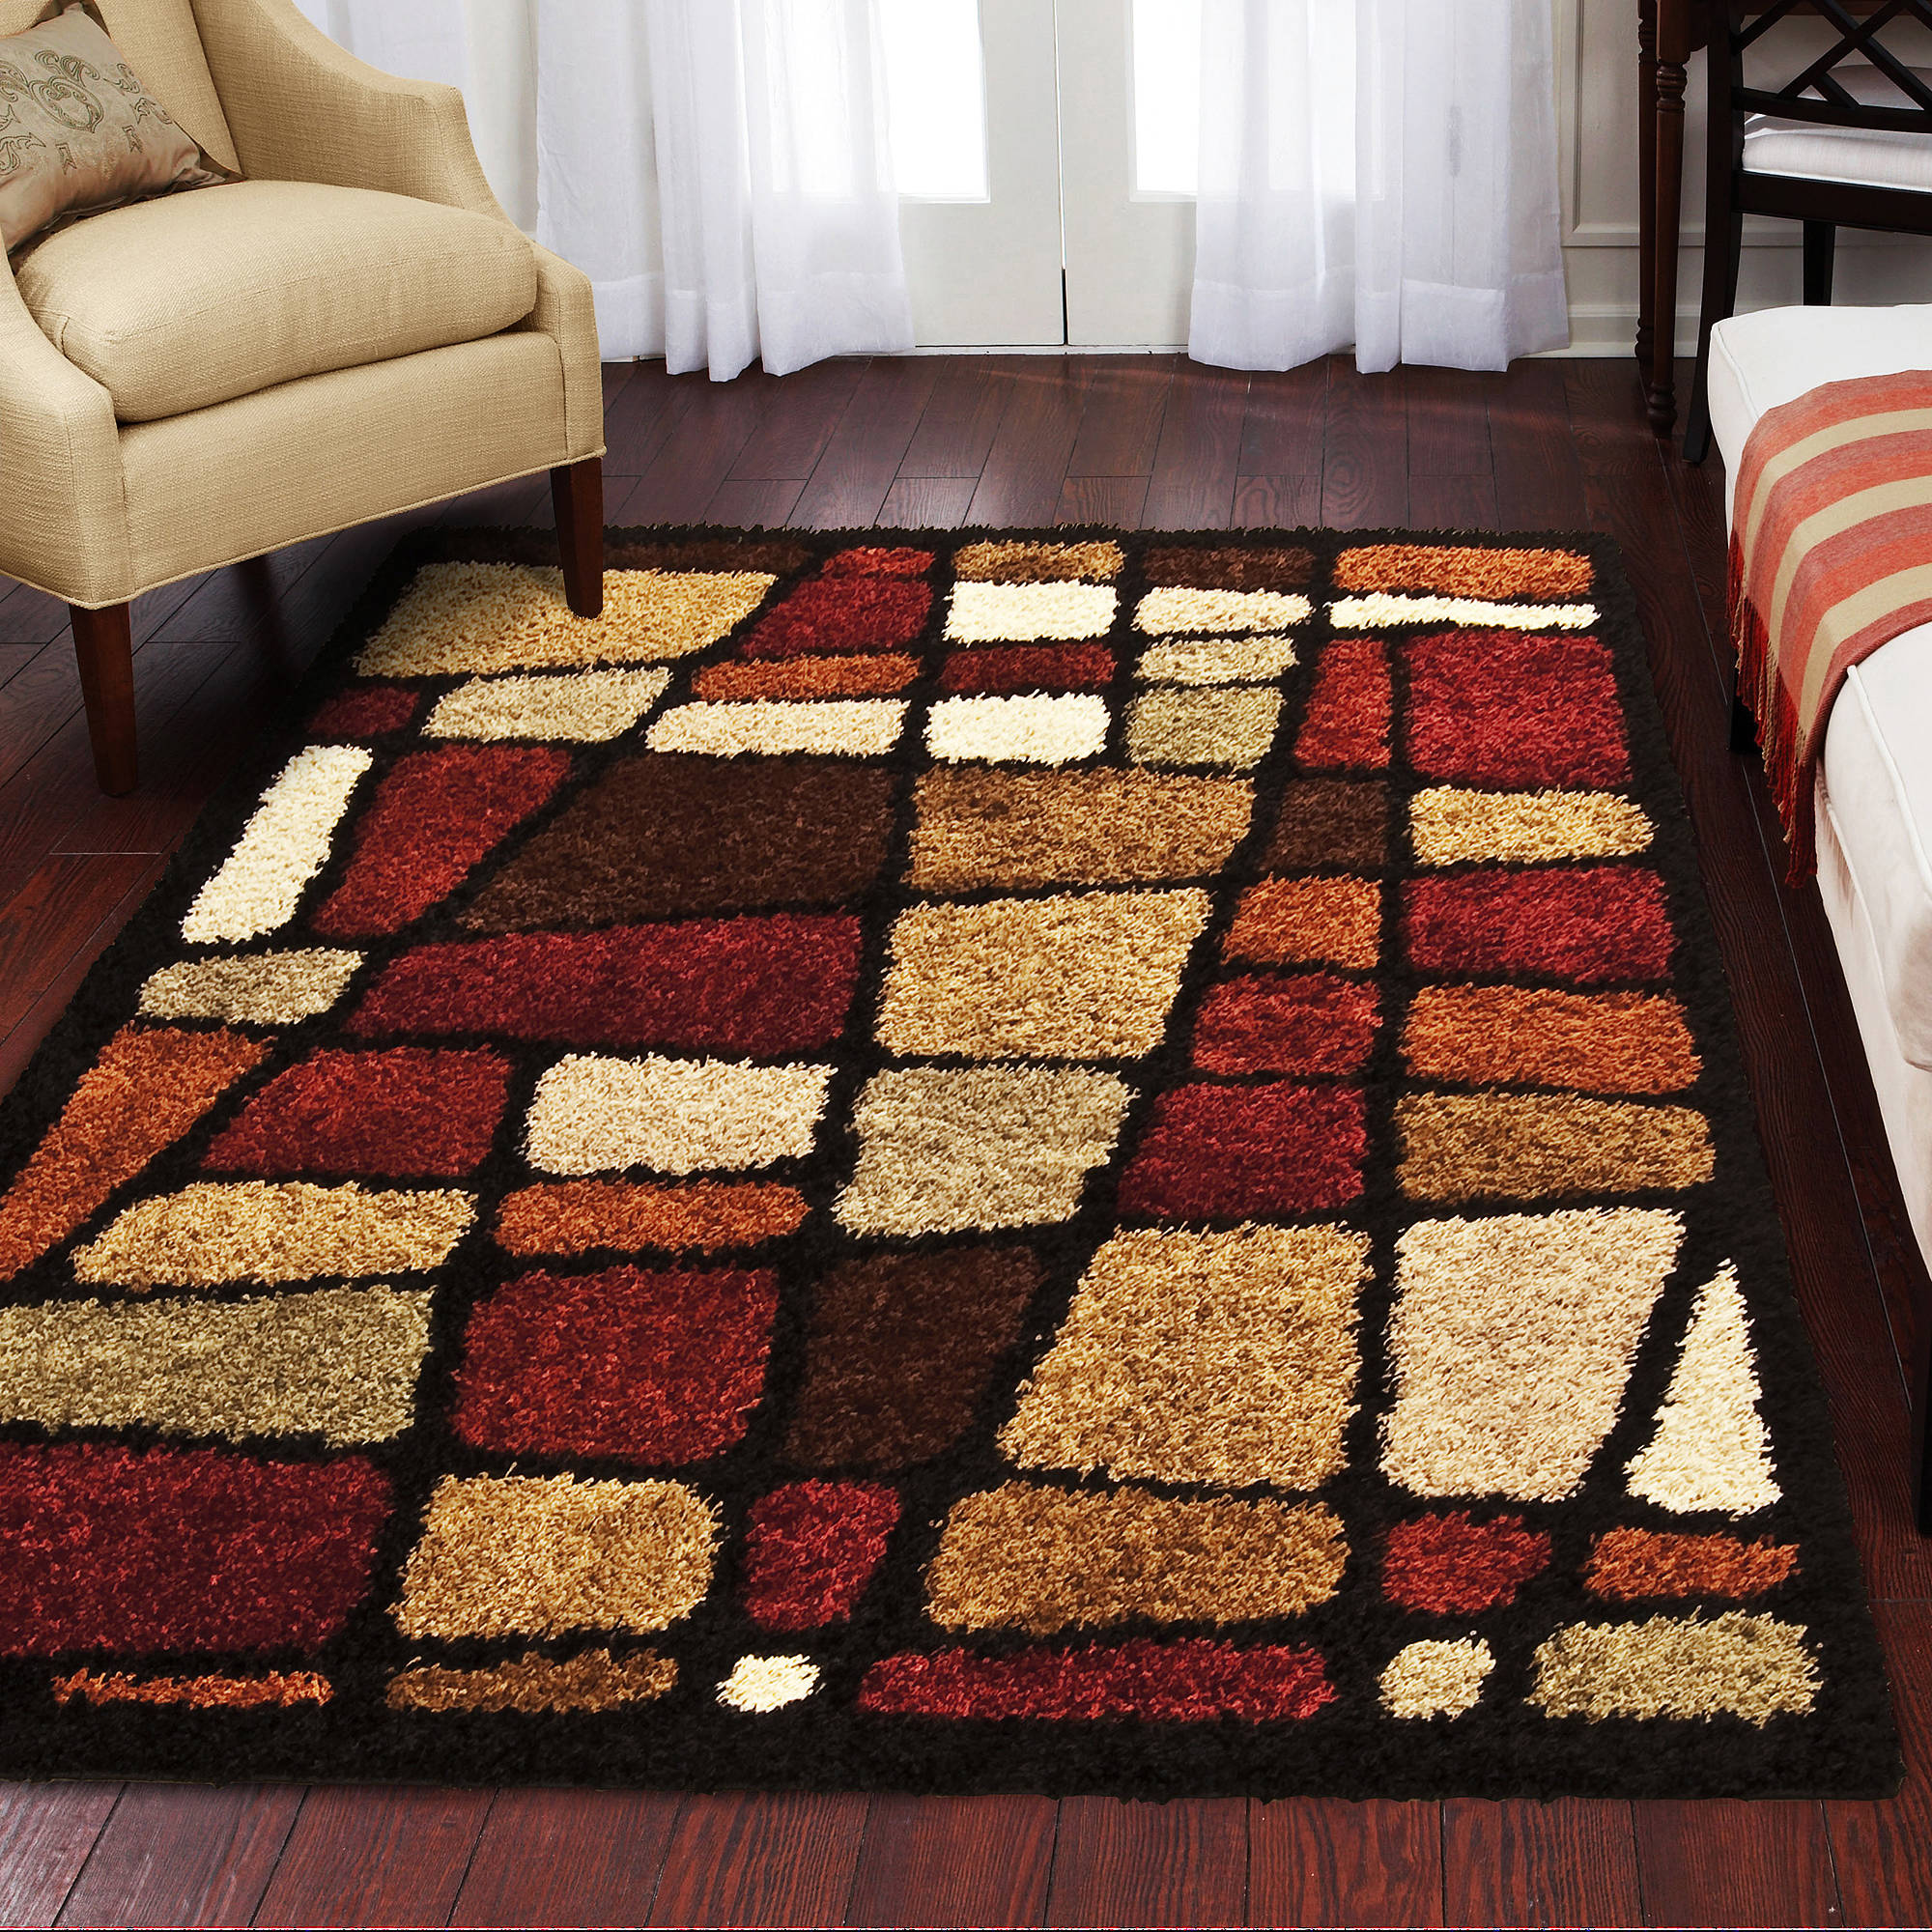 Shag Area Rugs For Living Room product